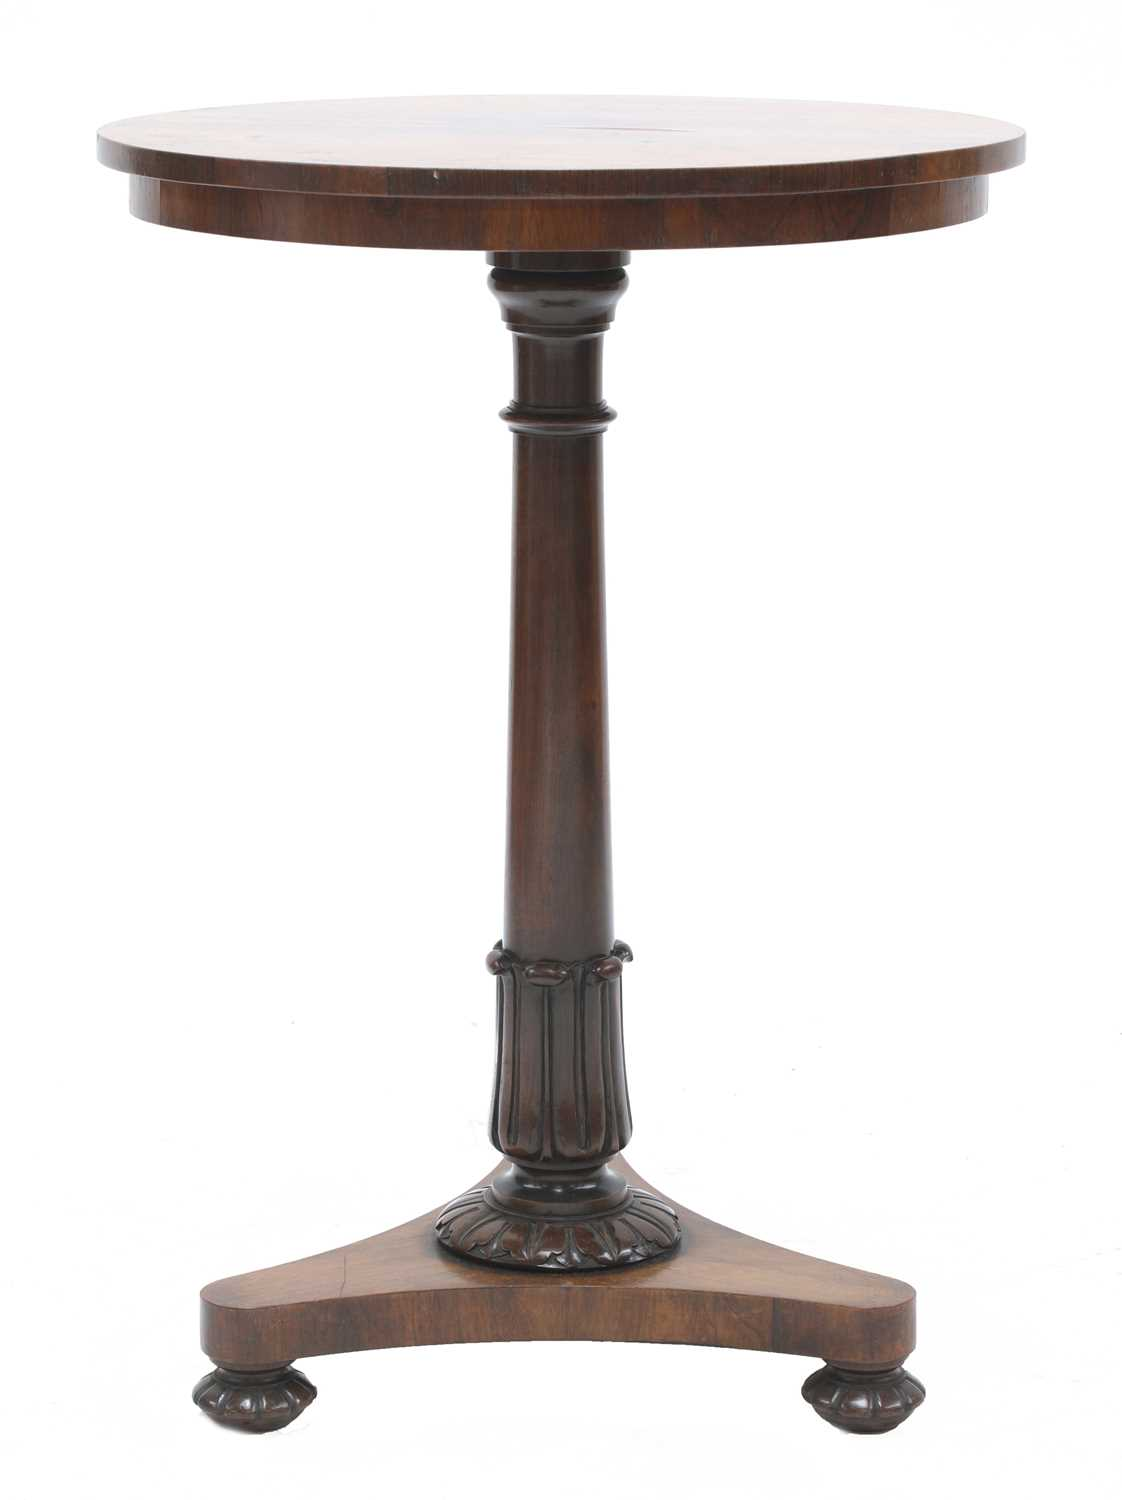 A William IV rosewood occasional table,